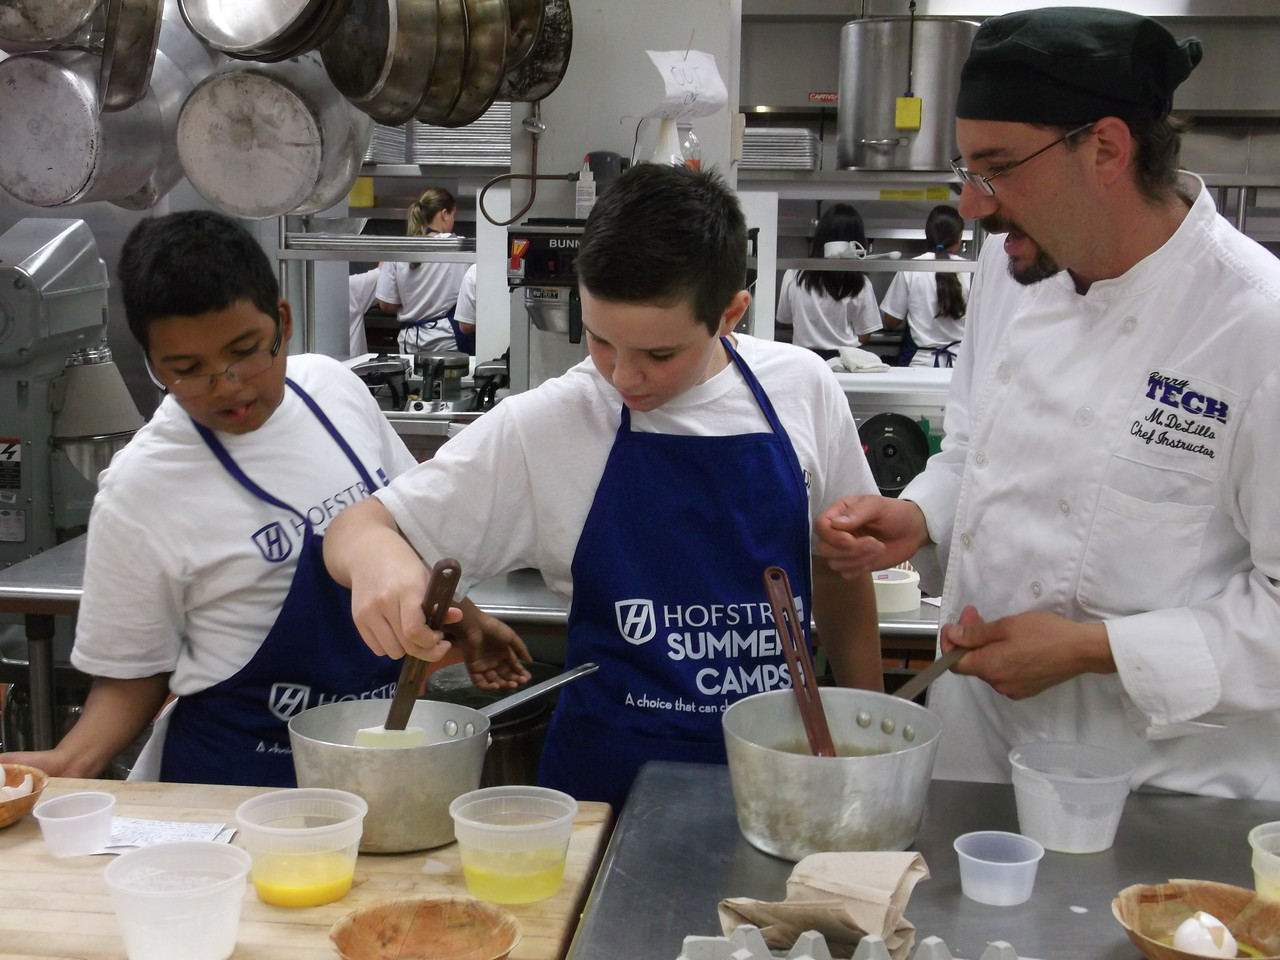 chef mike with campers